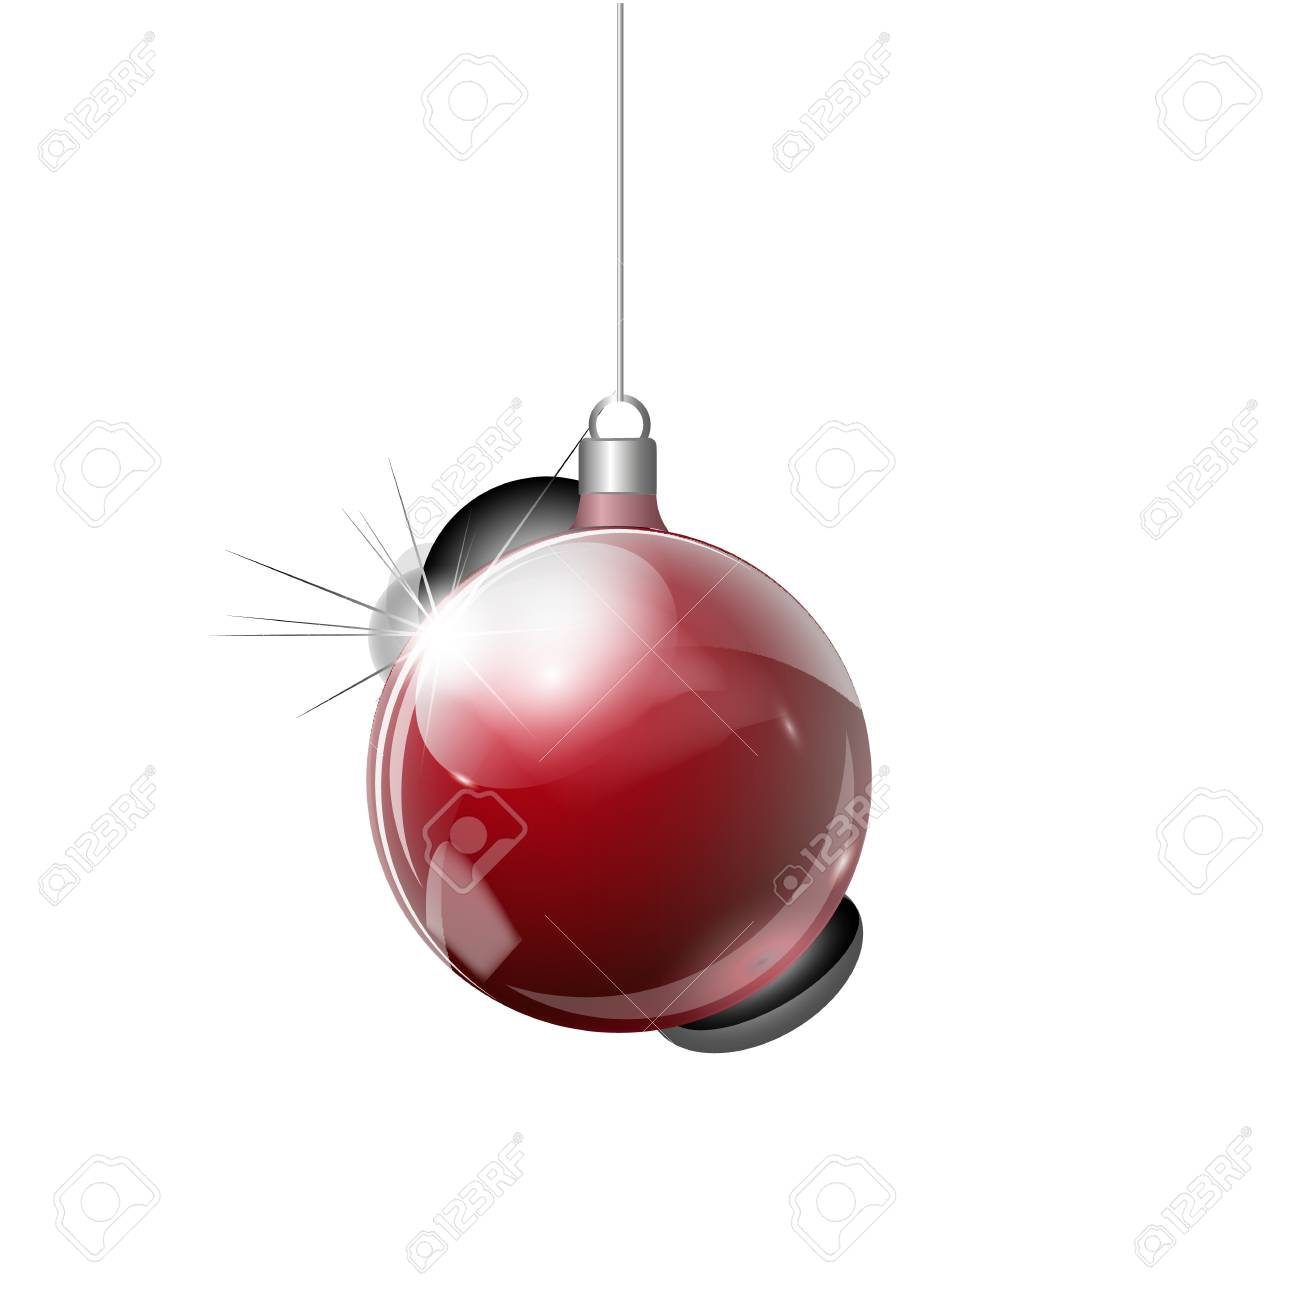 Christmas Transparent Ball Of Glass Elements Of Christmas Decorations